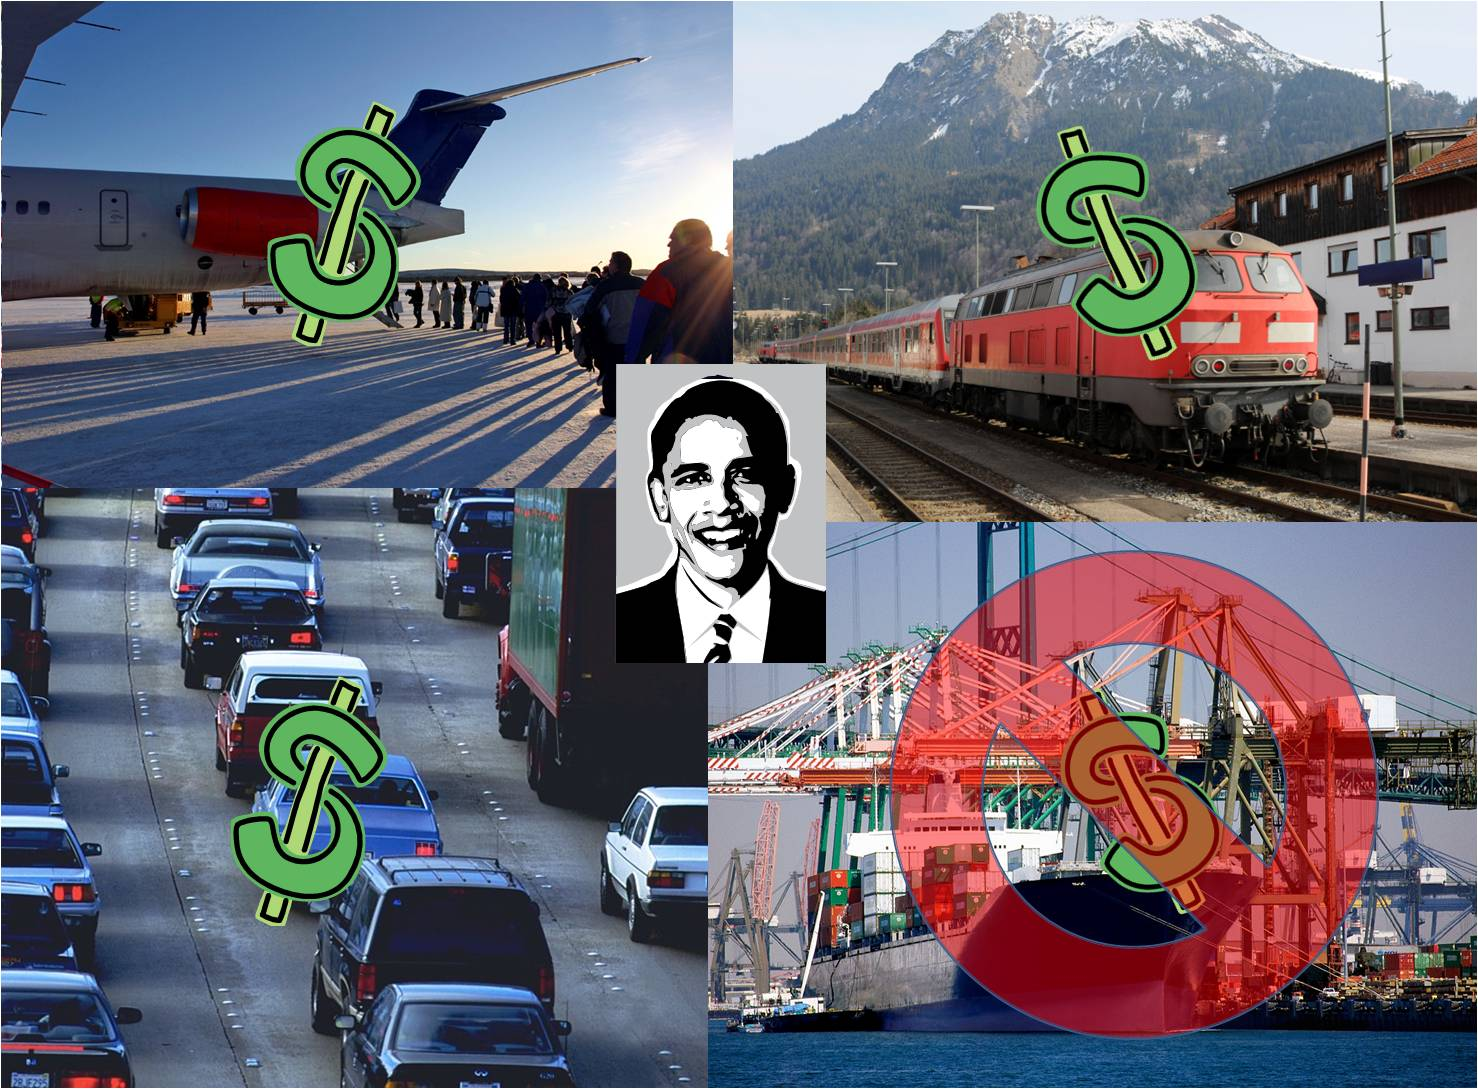 Previous Obama Infrastructure Funding